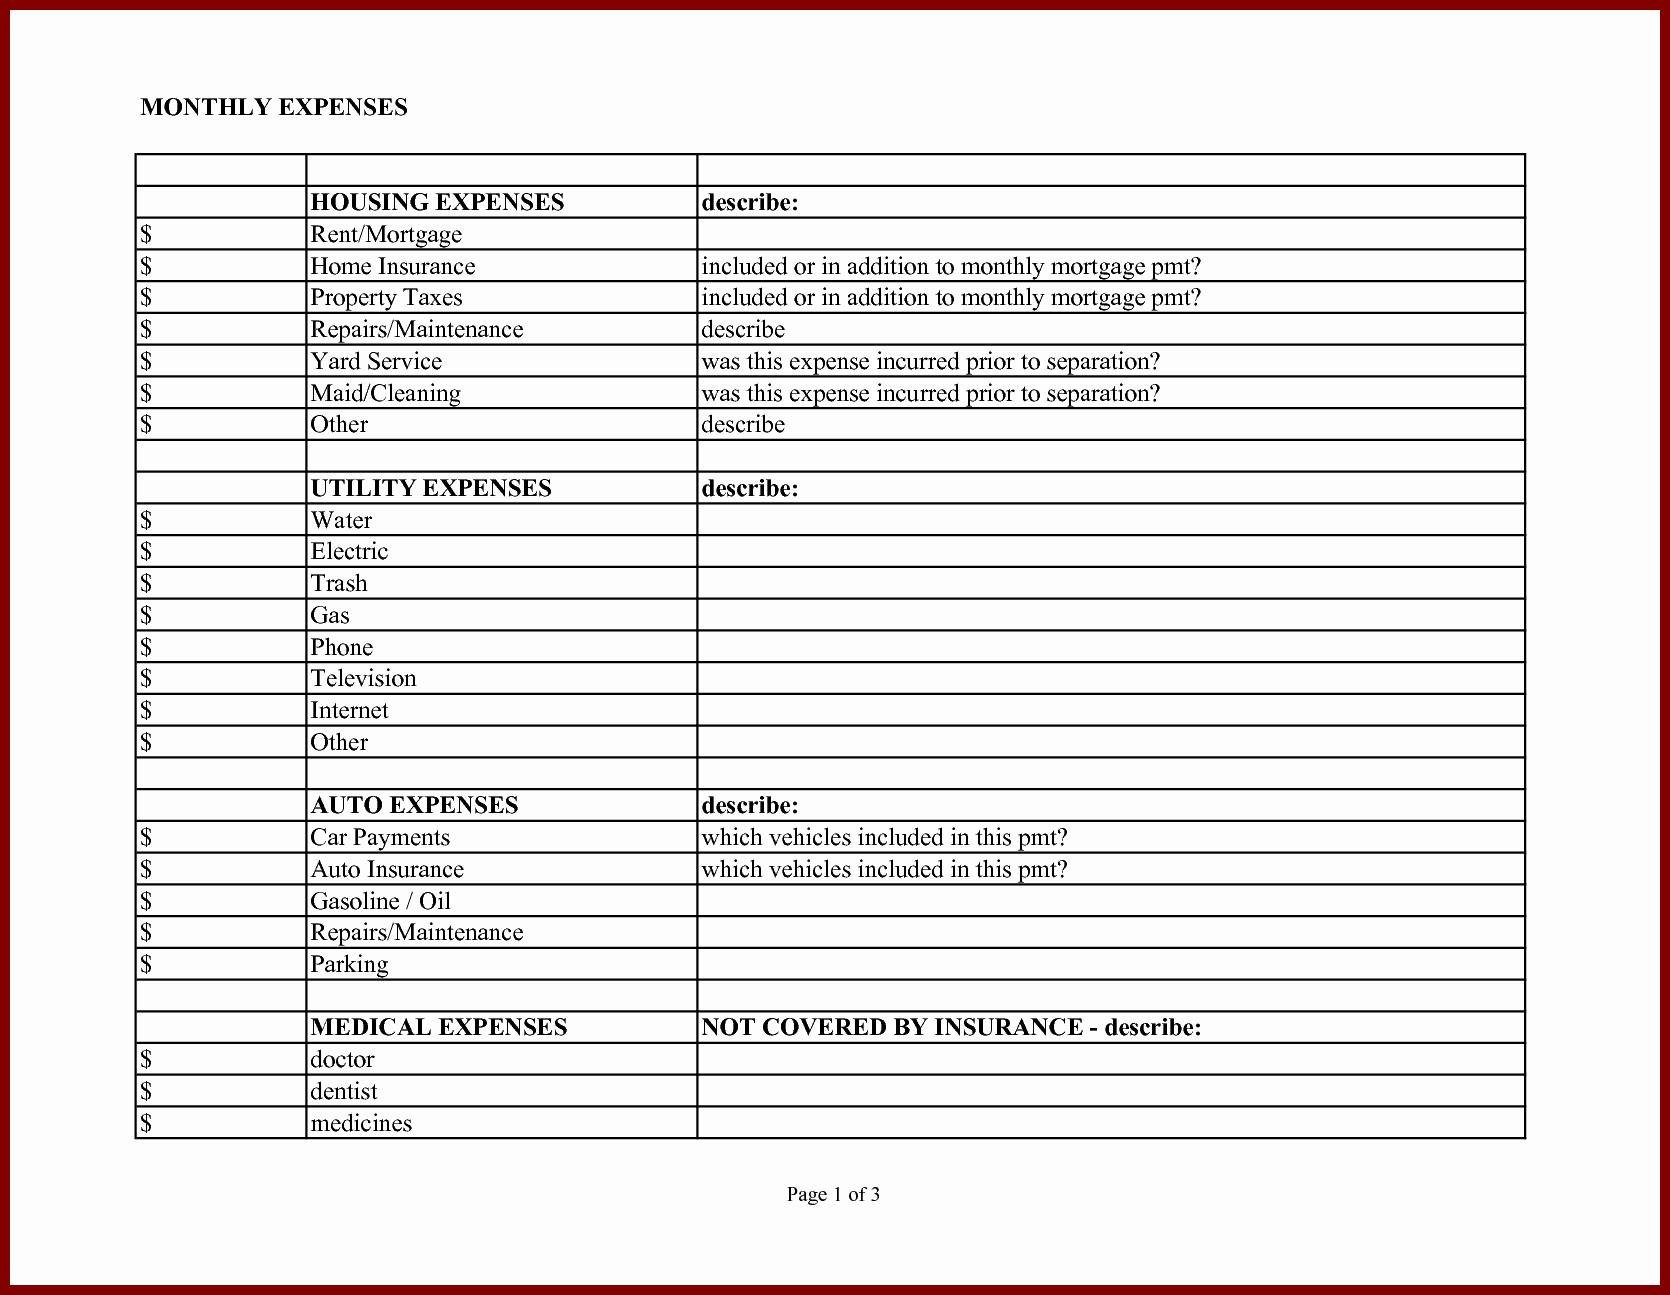 Business Expense Spreadsheet For Taxes Throughout Business Expense Sheet Template Recent Business Expense Template For